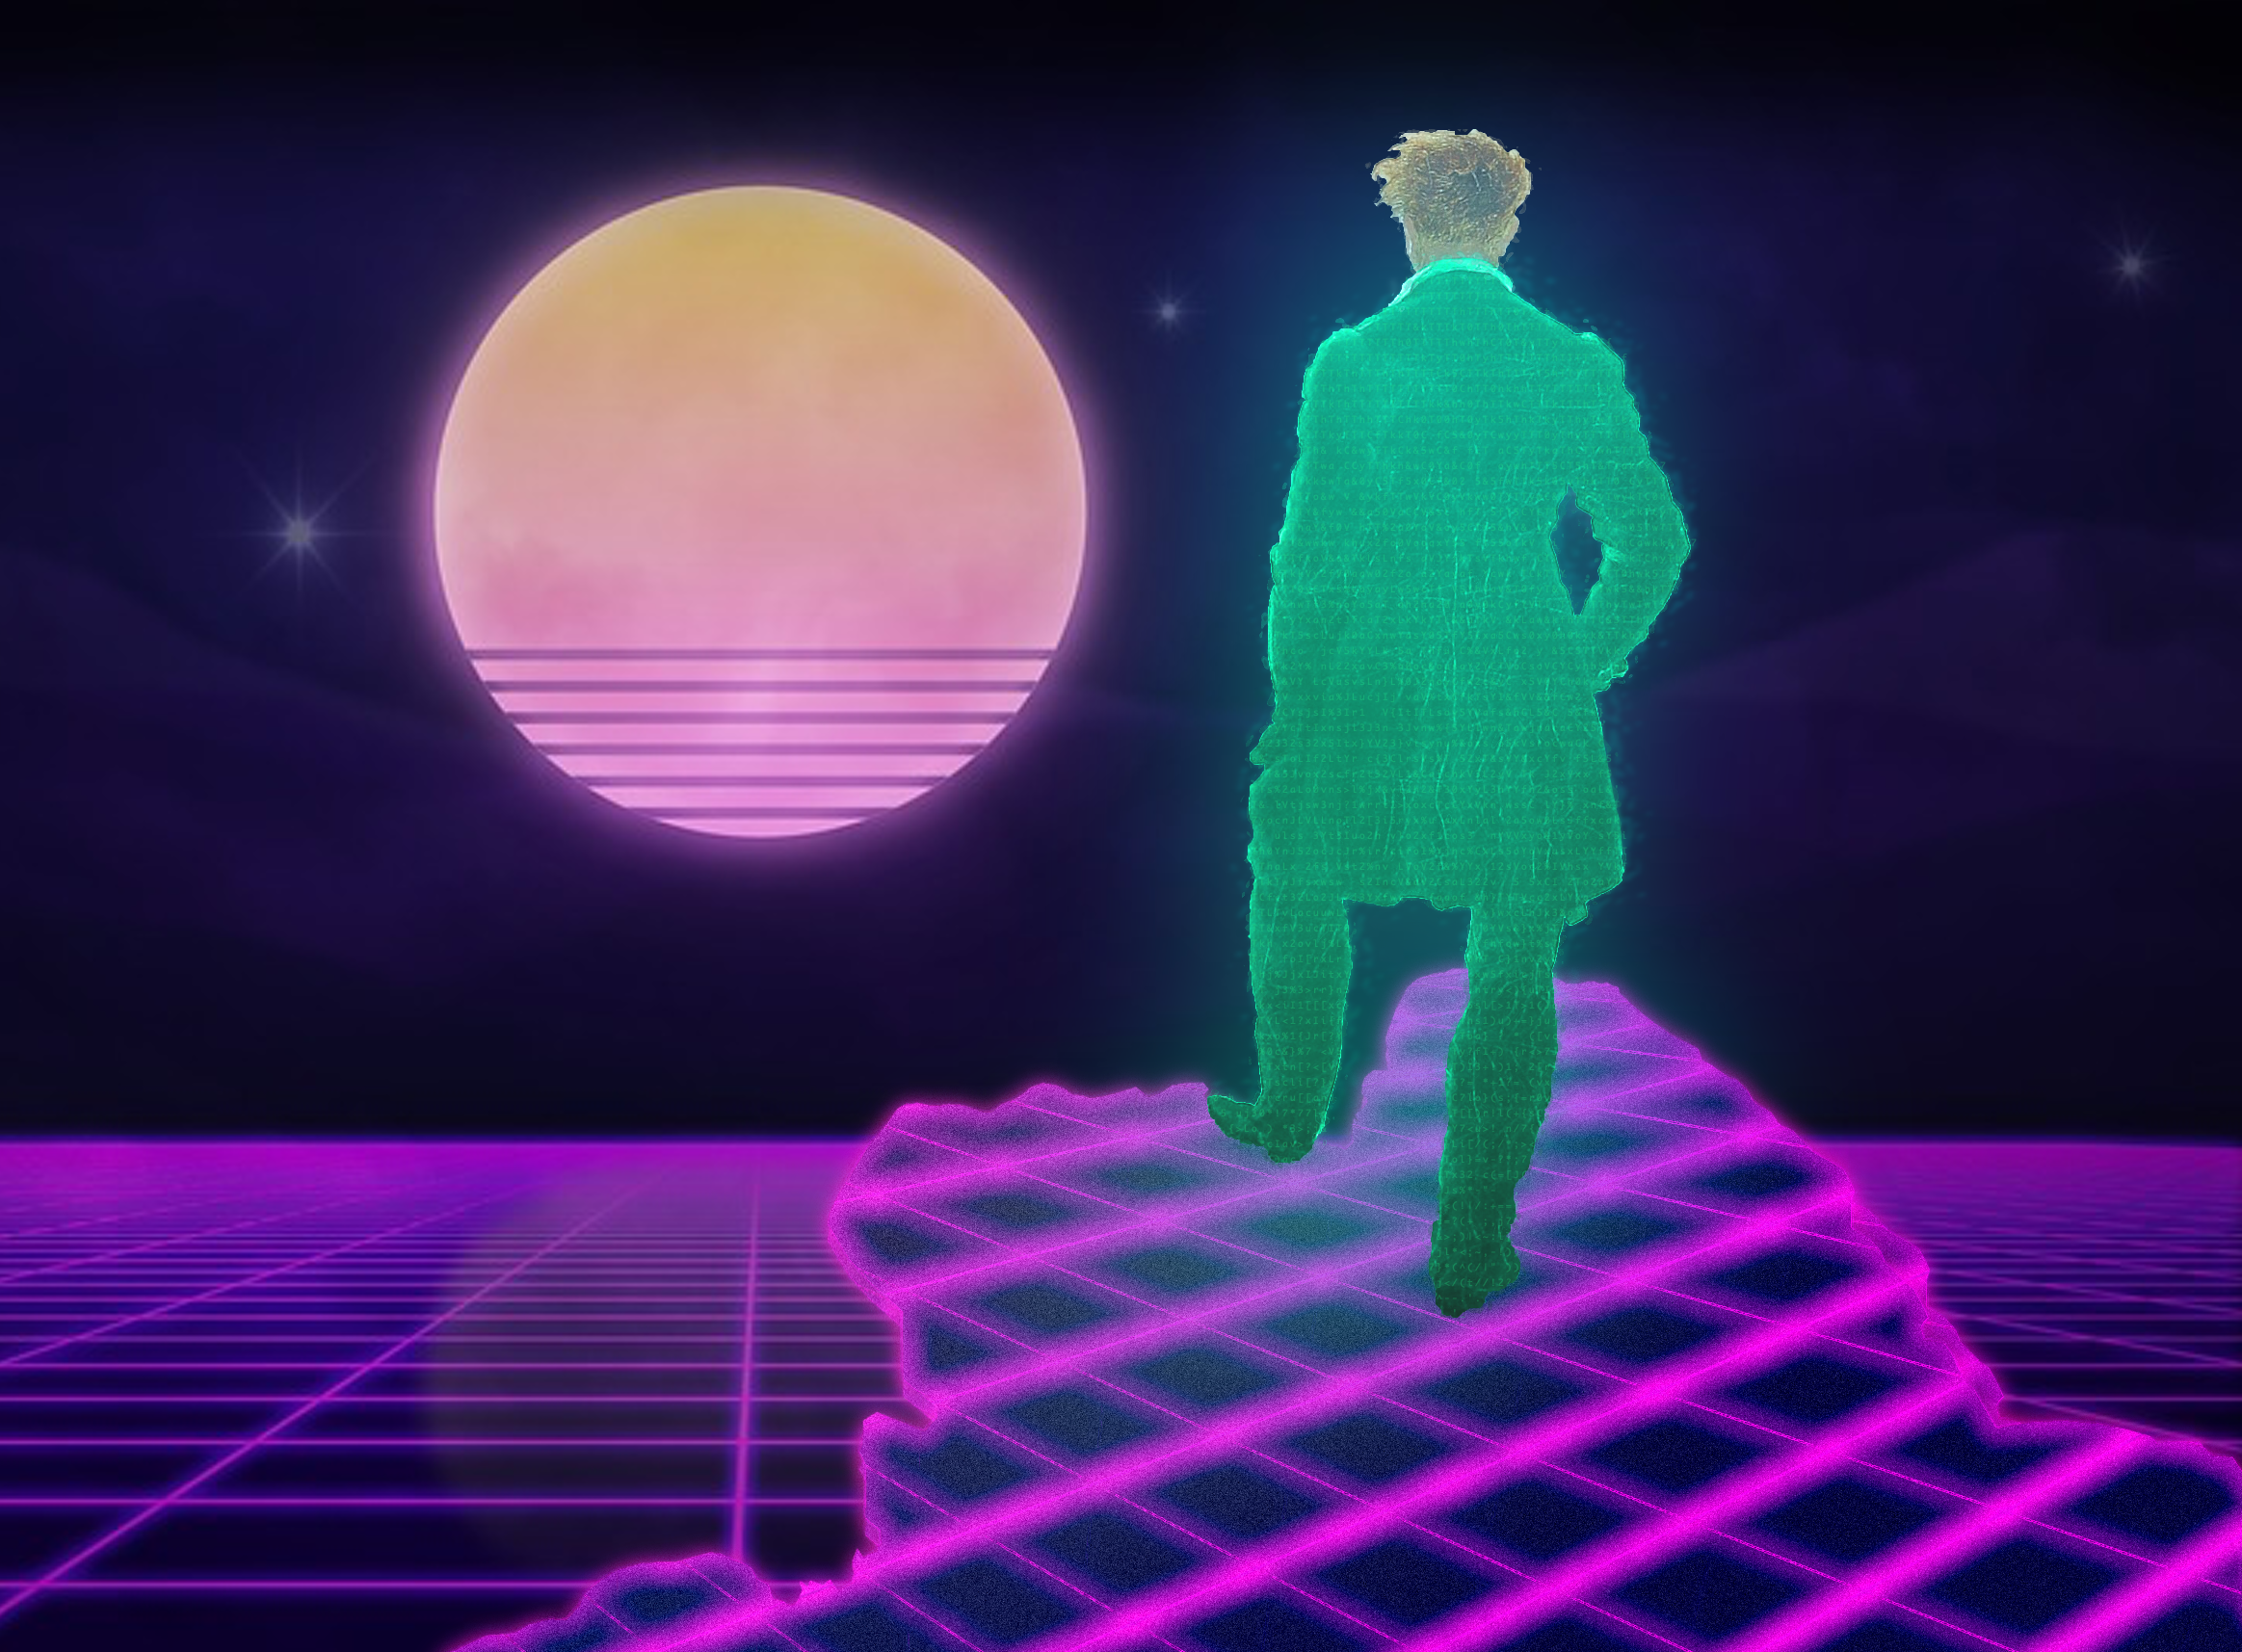 Wanderer above the Sea of Fog, Vaporwave style